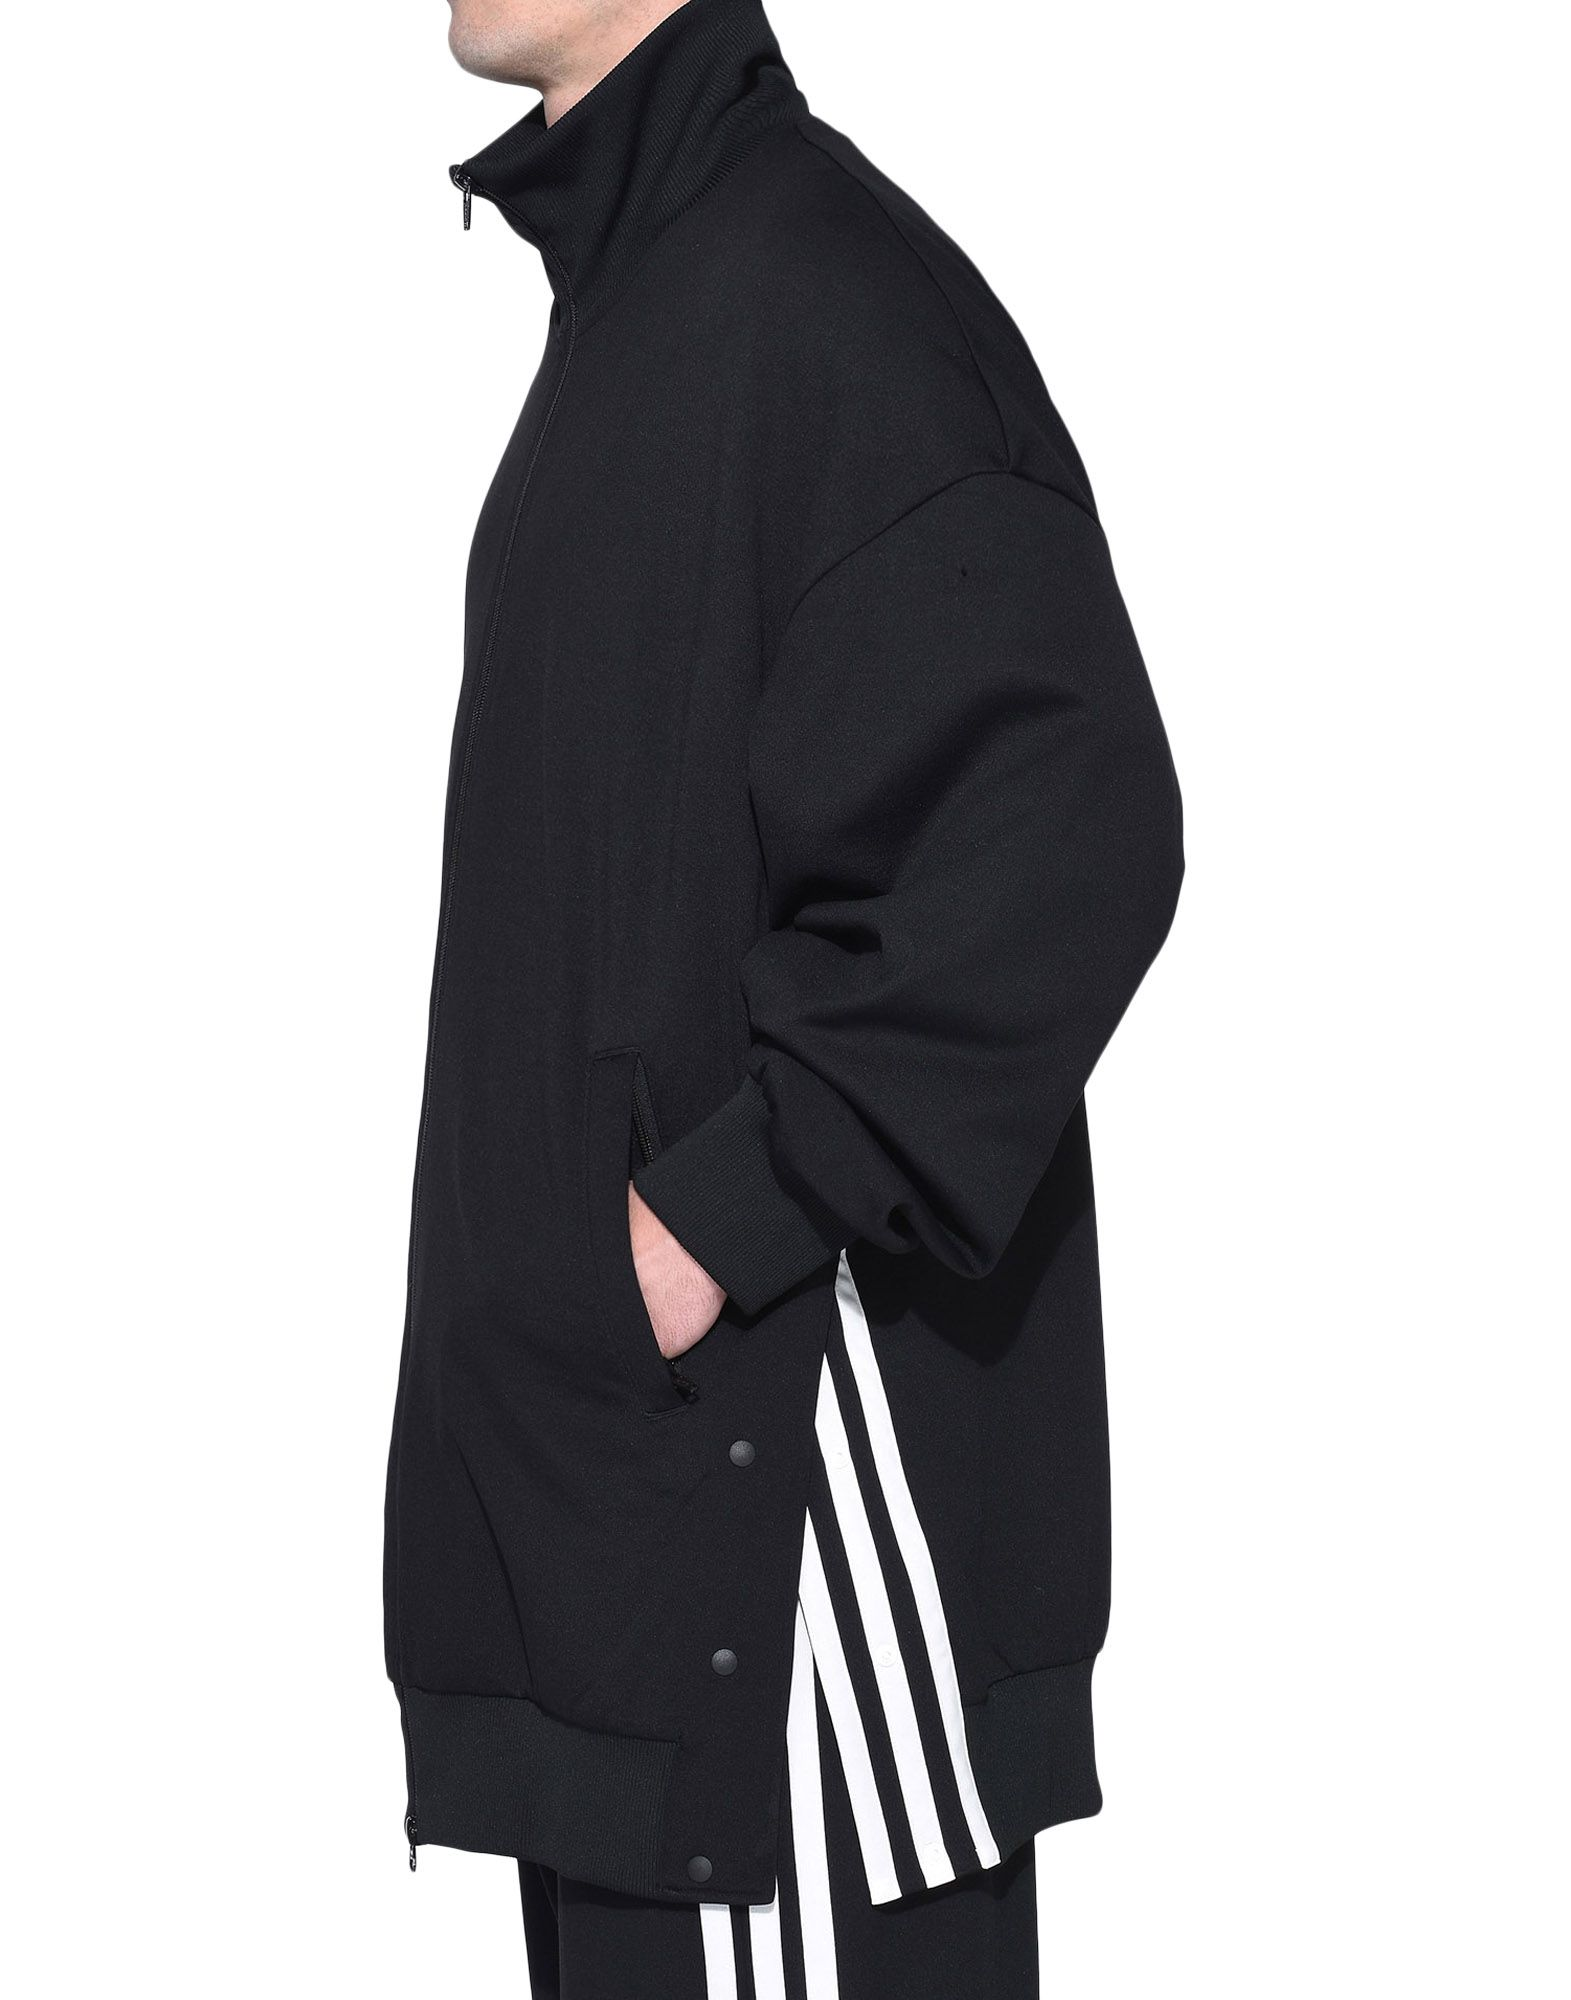 Y-3 Y-3 3-Stripes Matte Snap Track Jacket Track top Man e